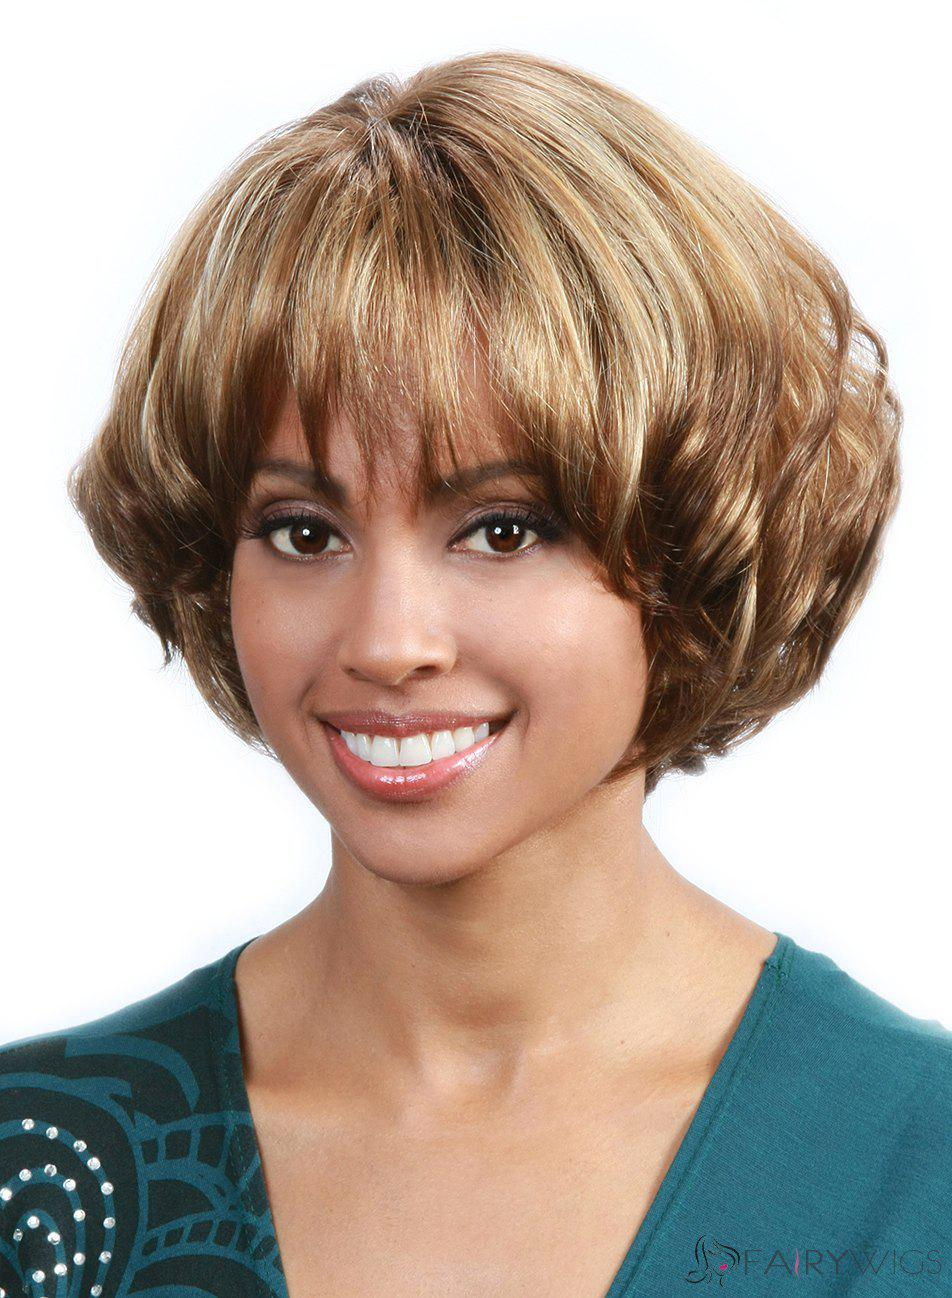 Fluffy Wavy Full Bang Fashion Blonde Mixed Brown Capless Stunning Short Synthetic Women's Wig